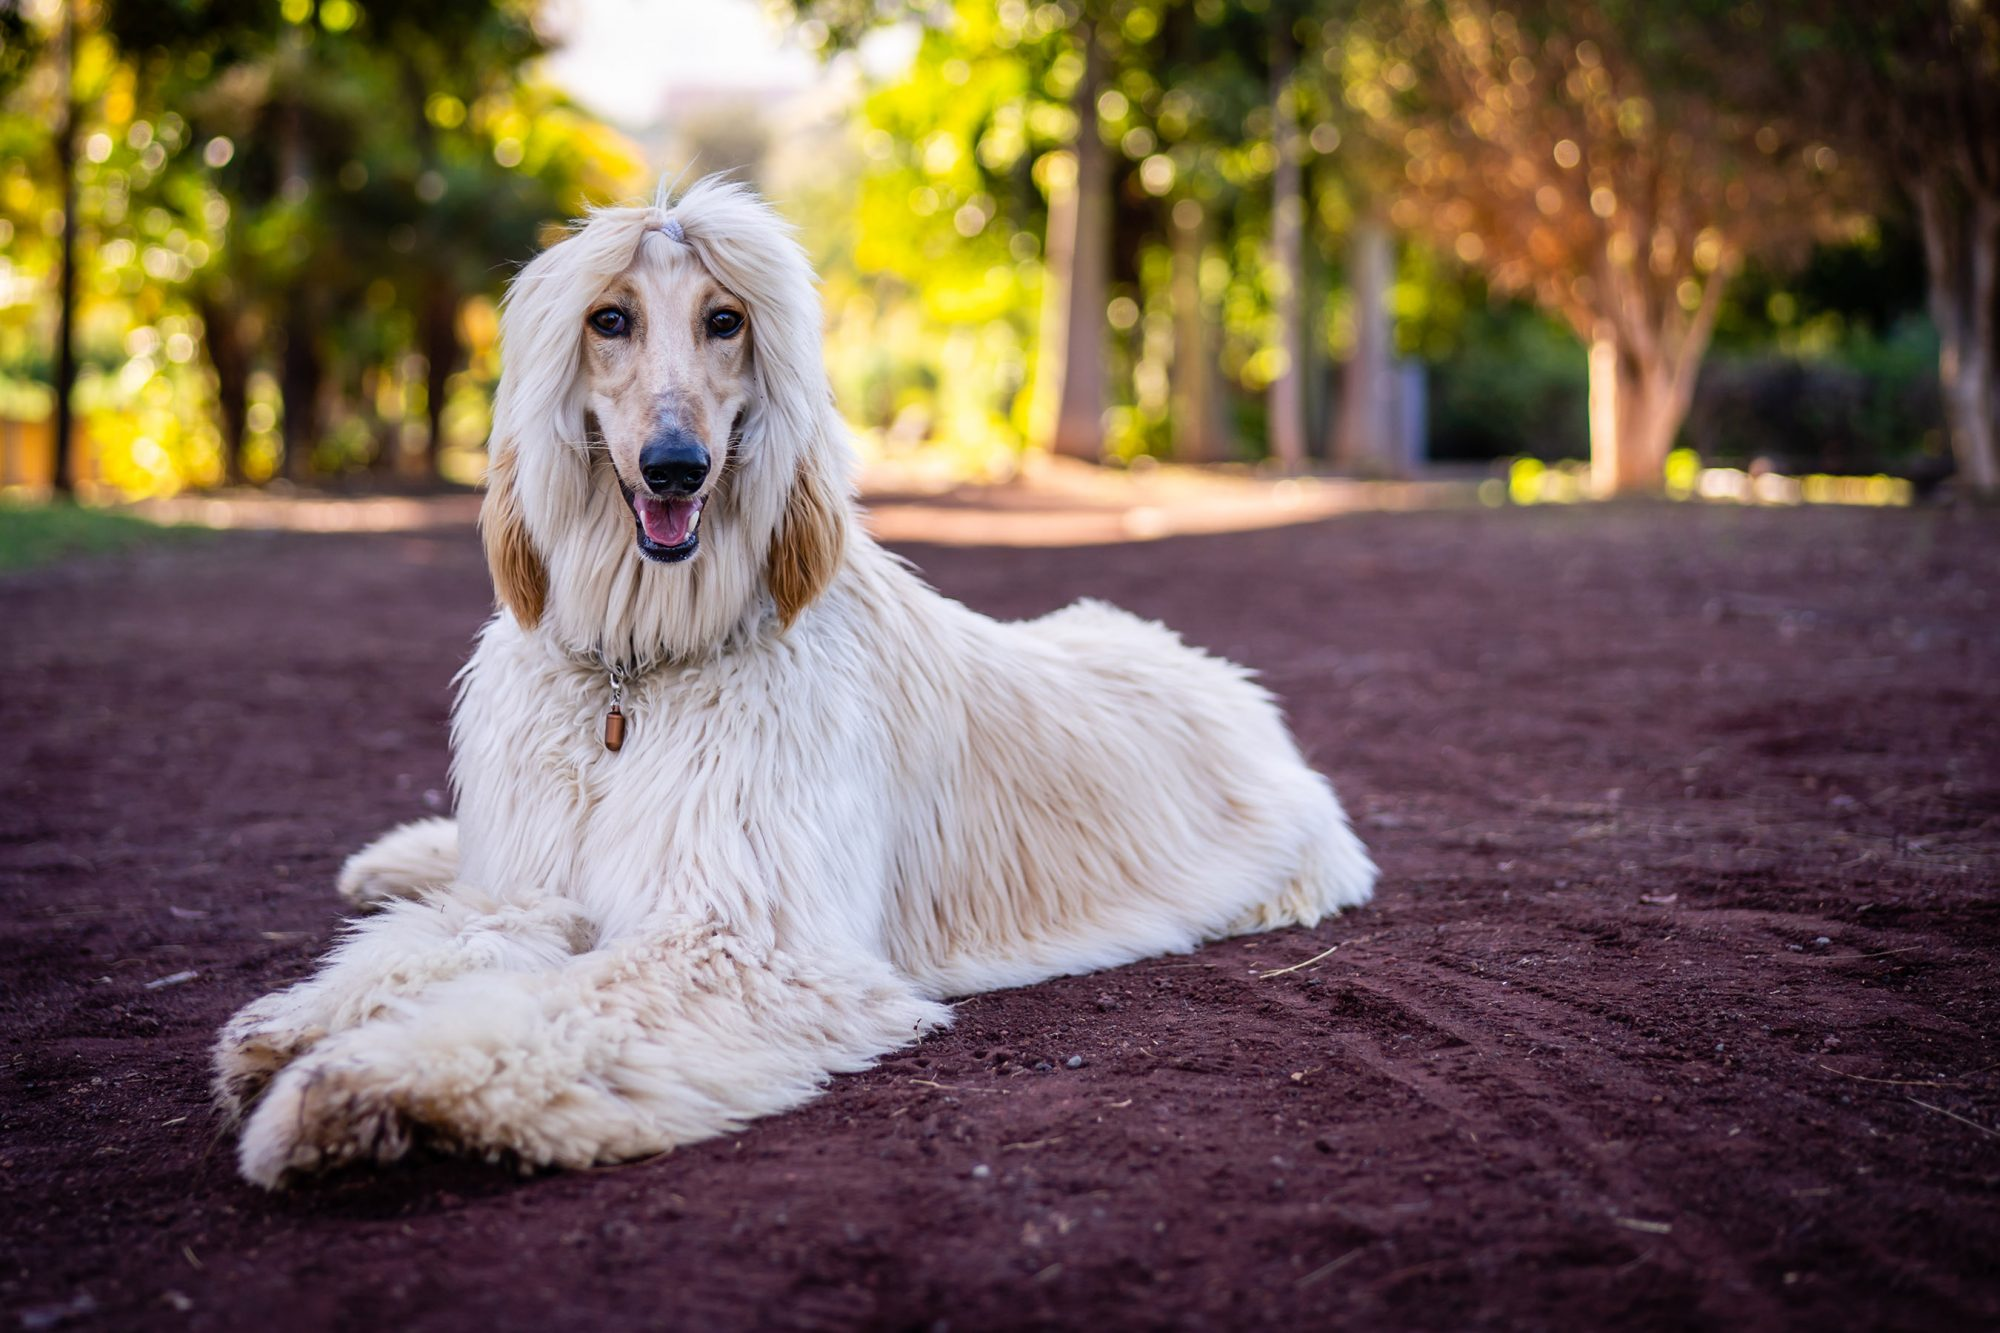 afghan hound with shorter hair lying on ground